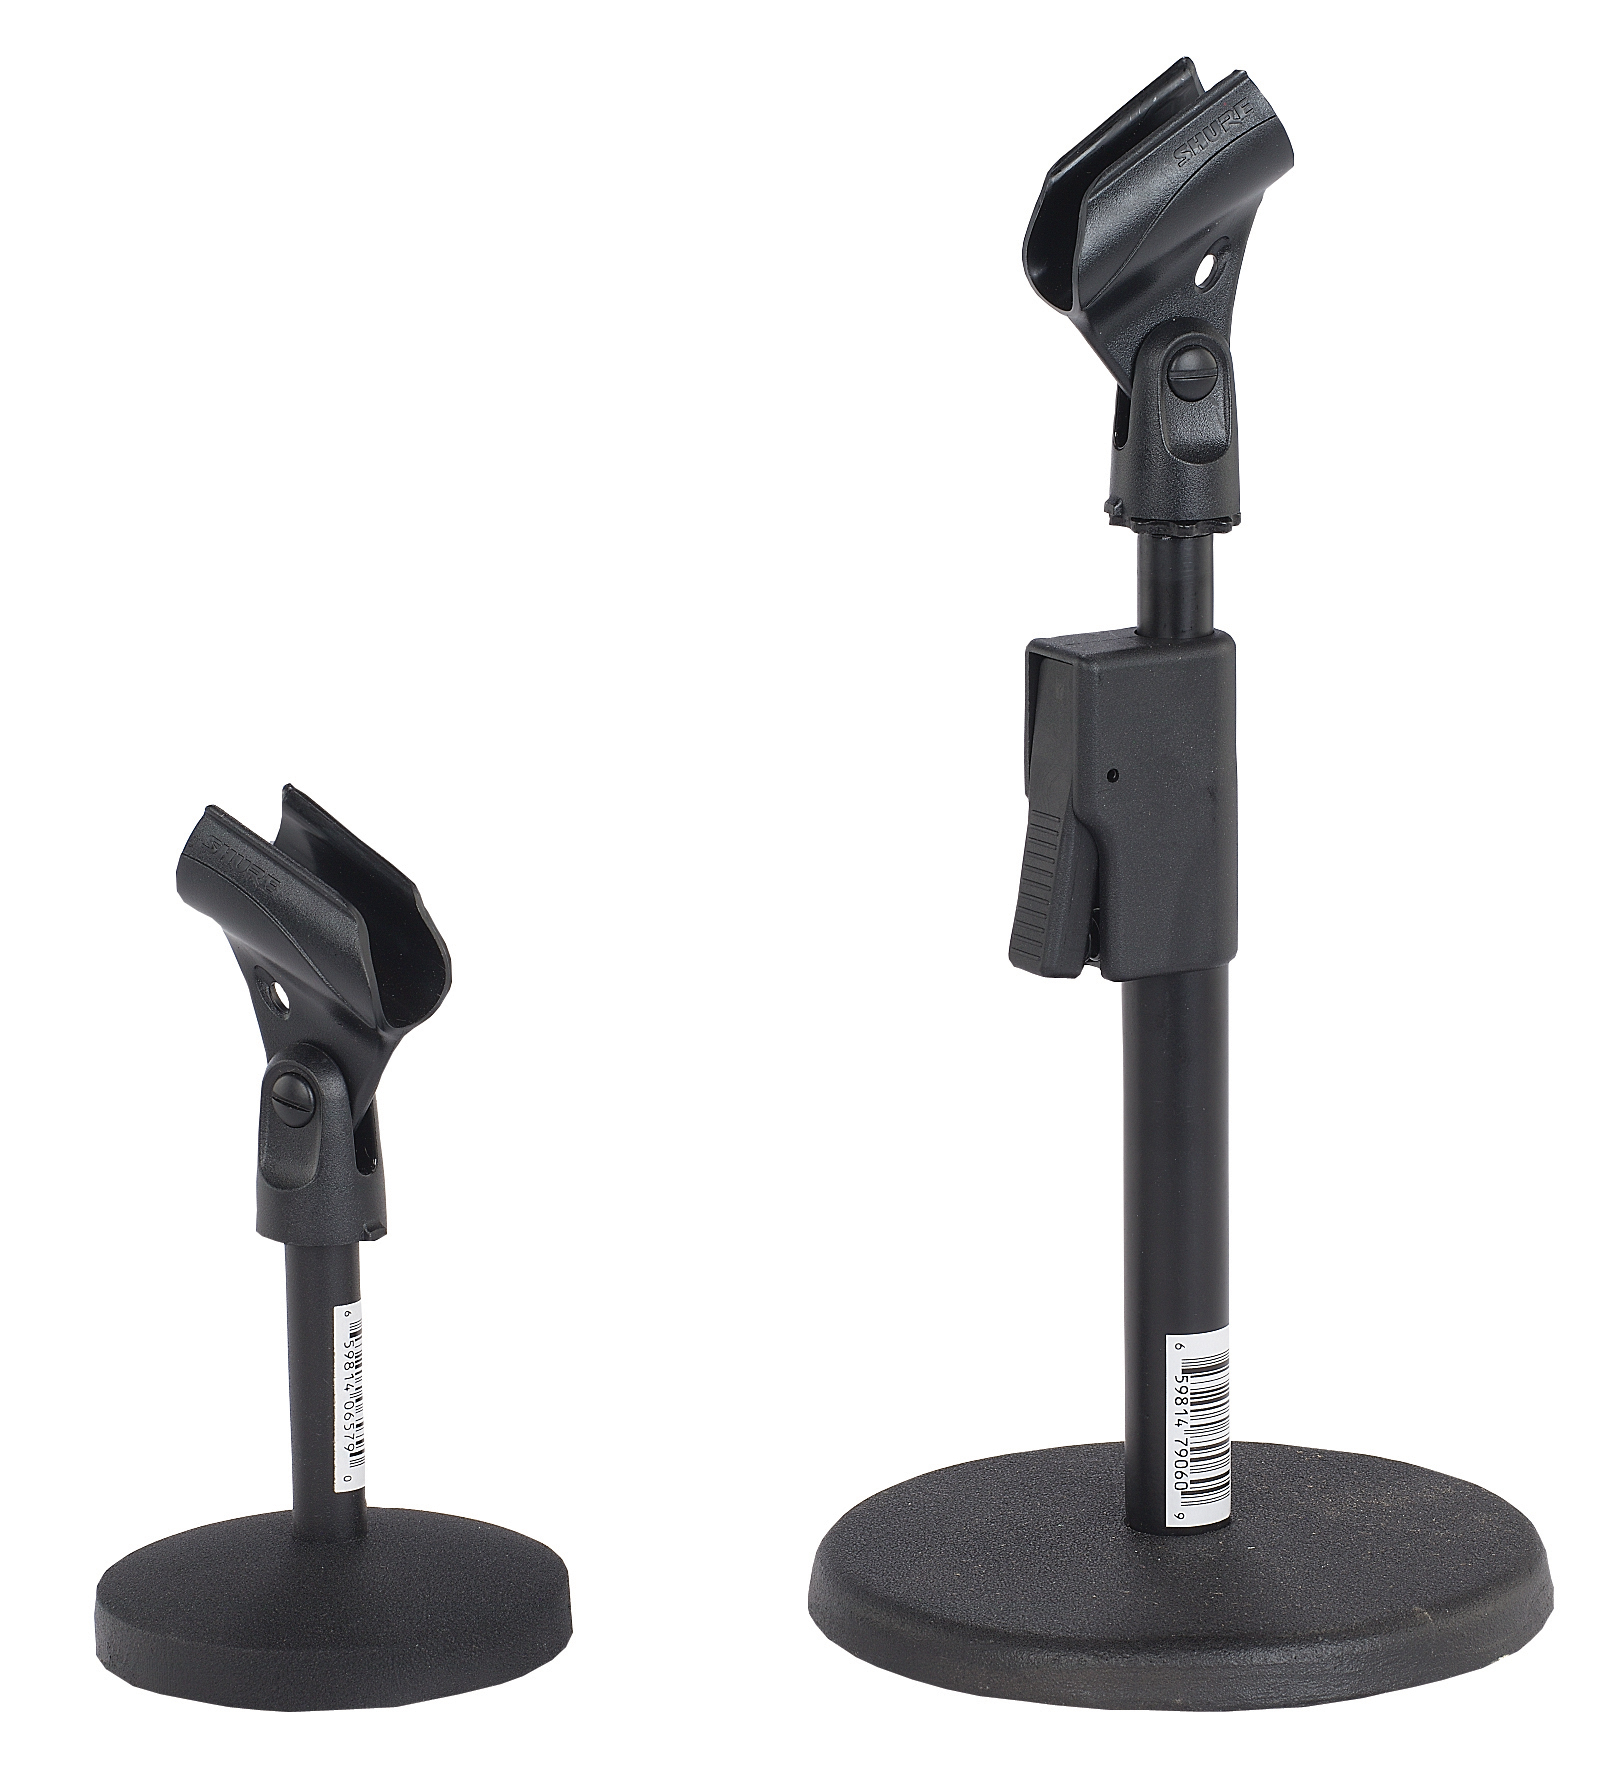 AmpliVox S1075 Quik-Release Adjustable Desk Mic Stand